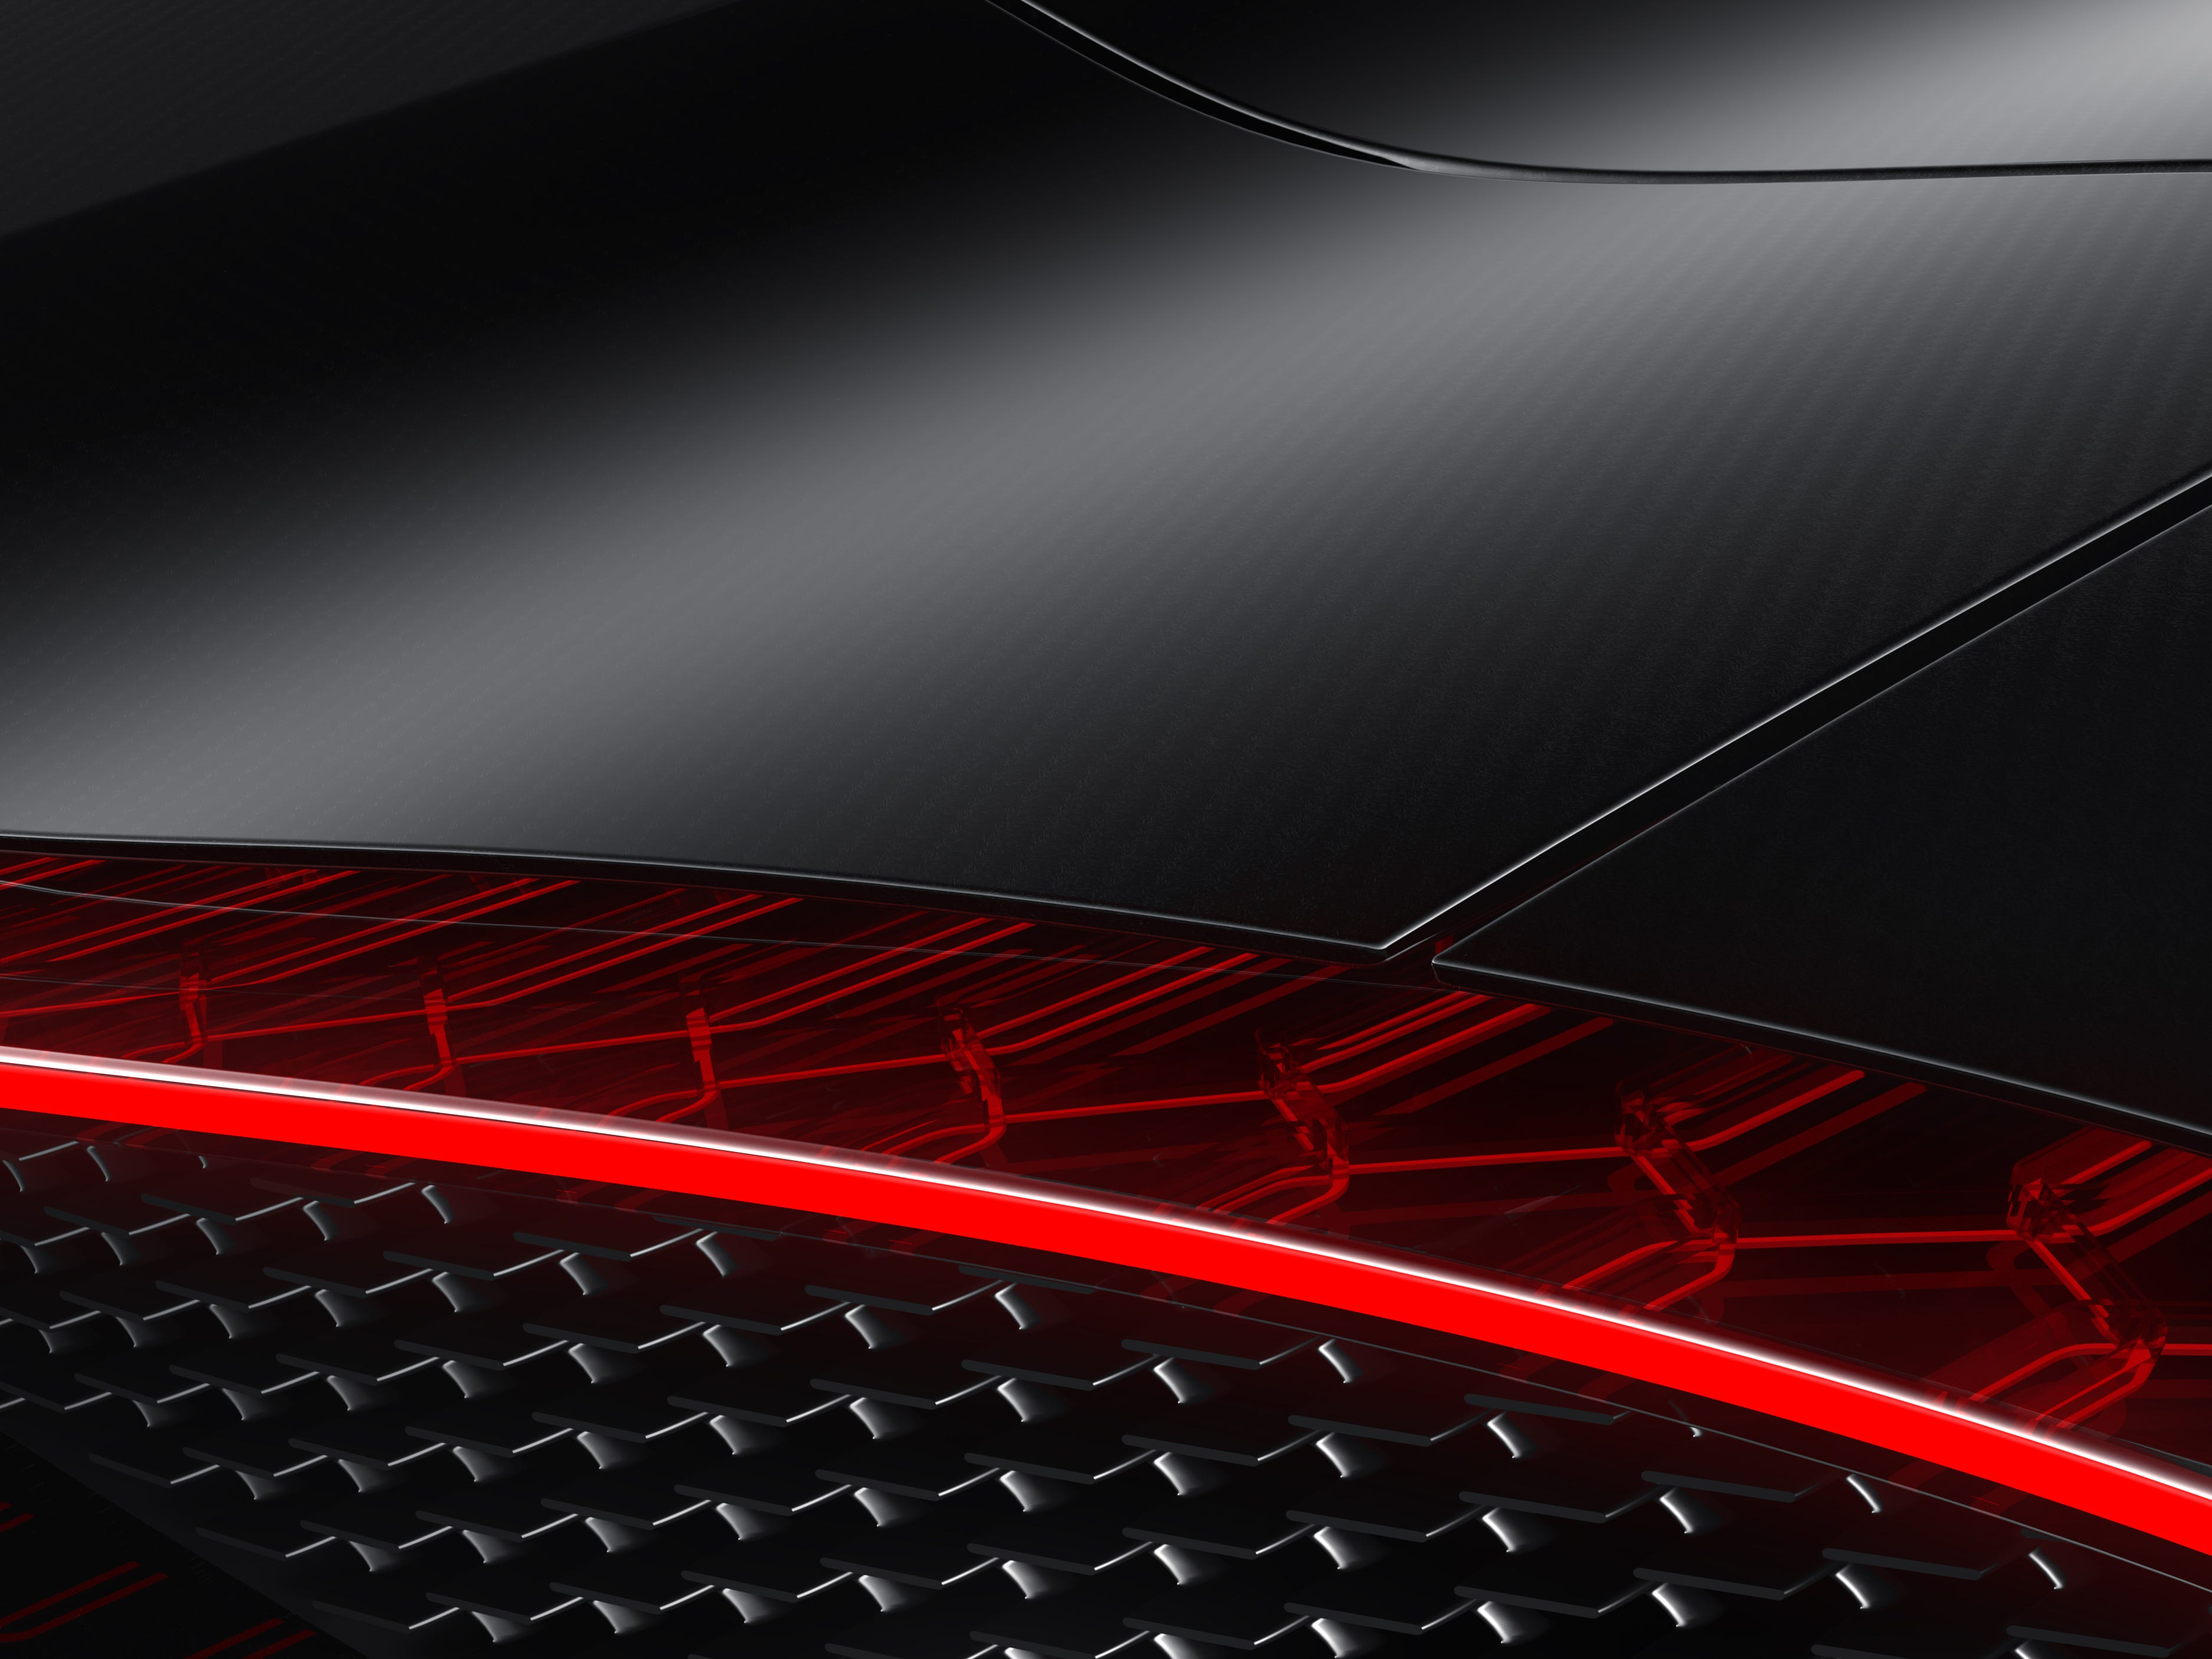 The taillight strip on the La Voiture Noire is one giant LED strip that extends across the length of the rear.